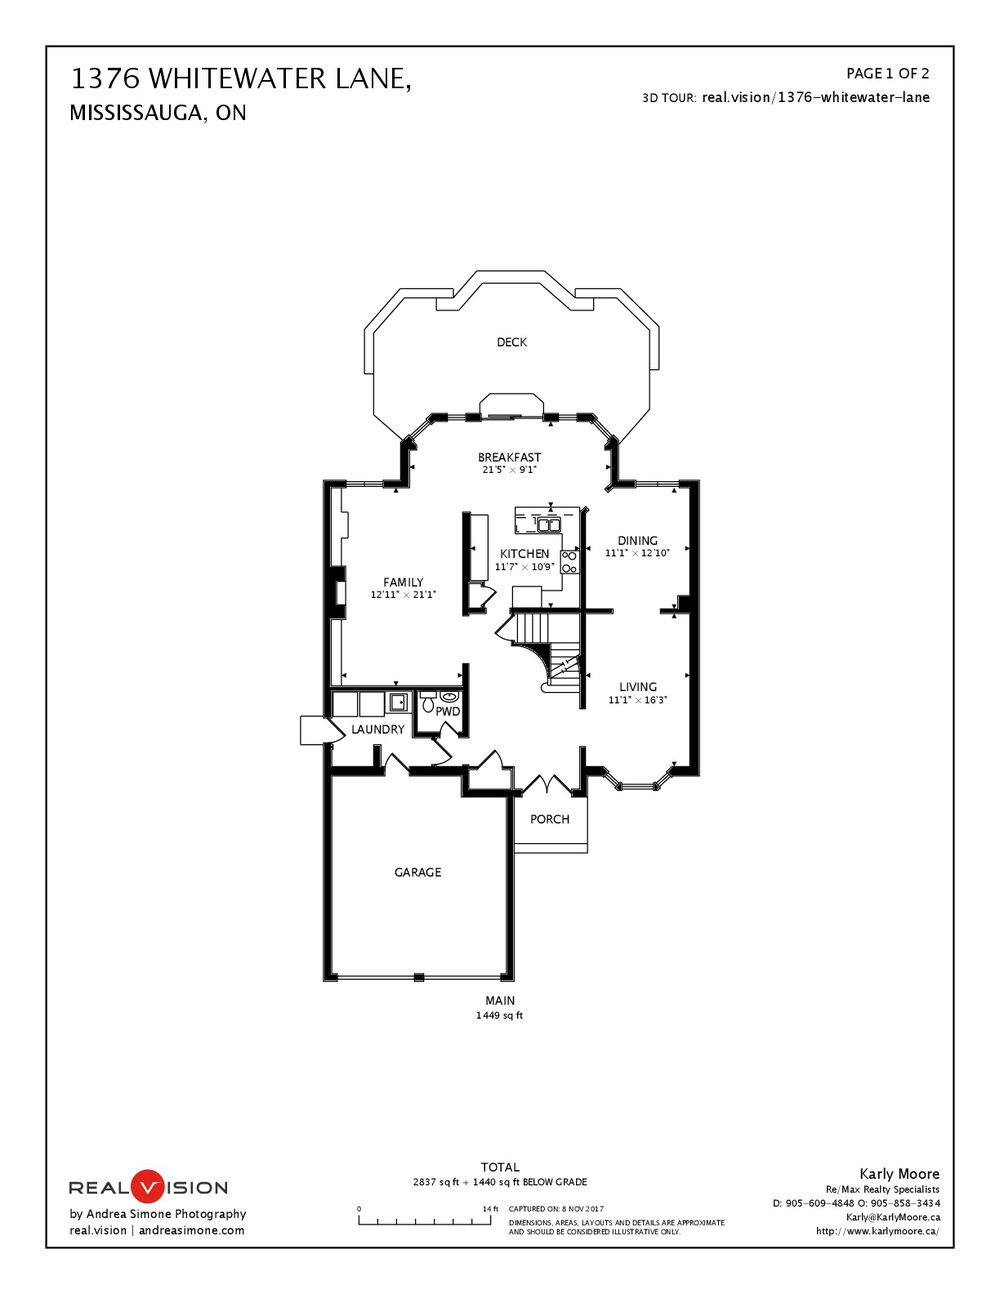 Floorplan---1376-Whitewater-Lane-001.jpg